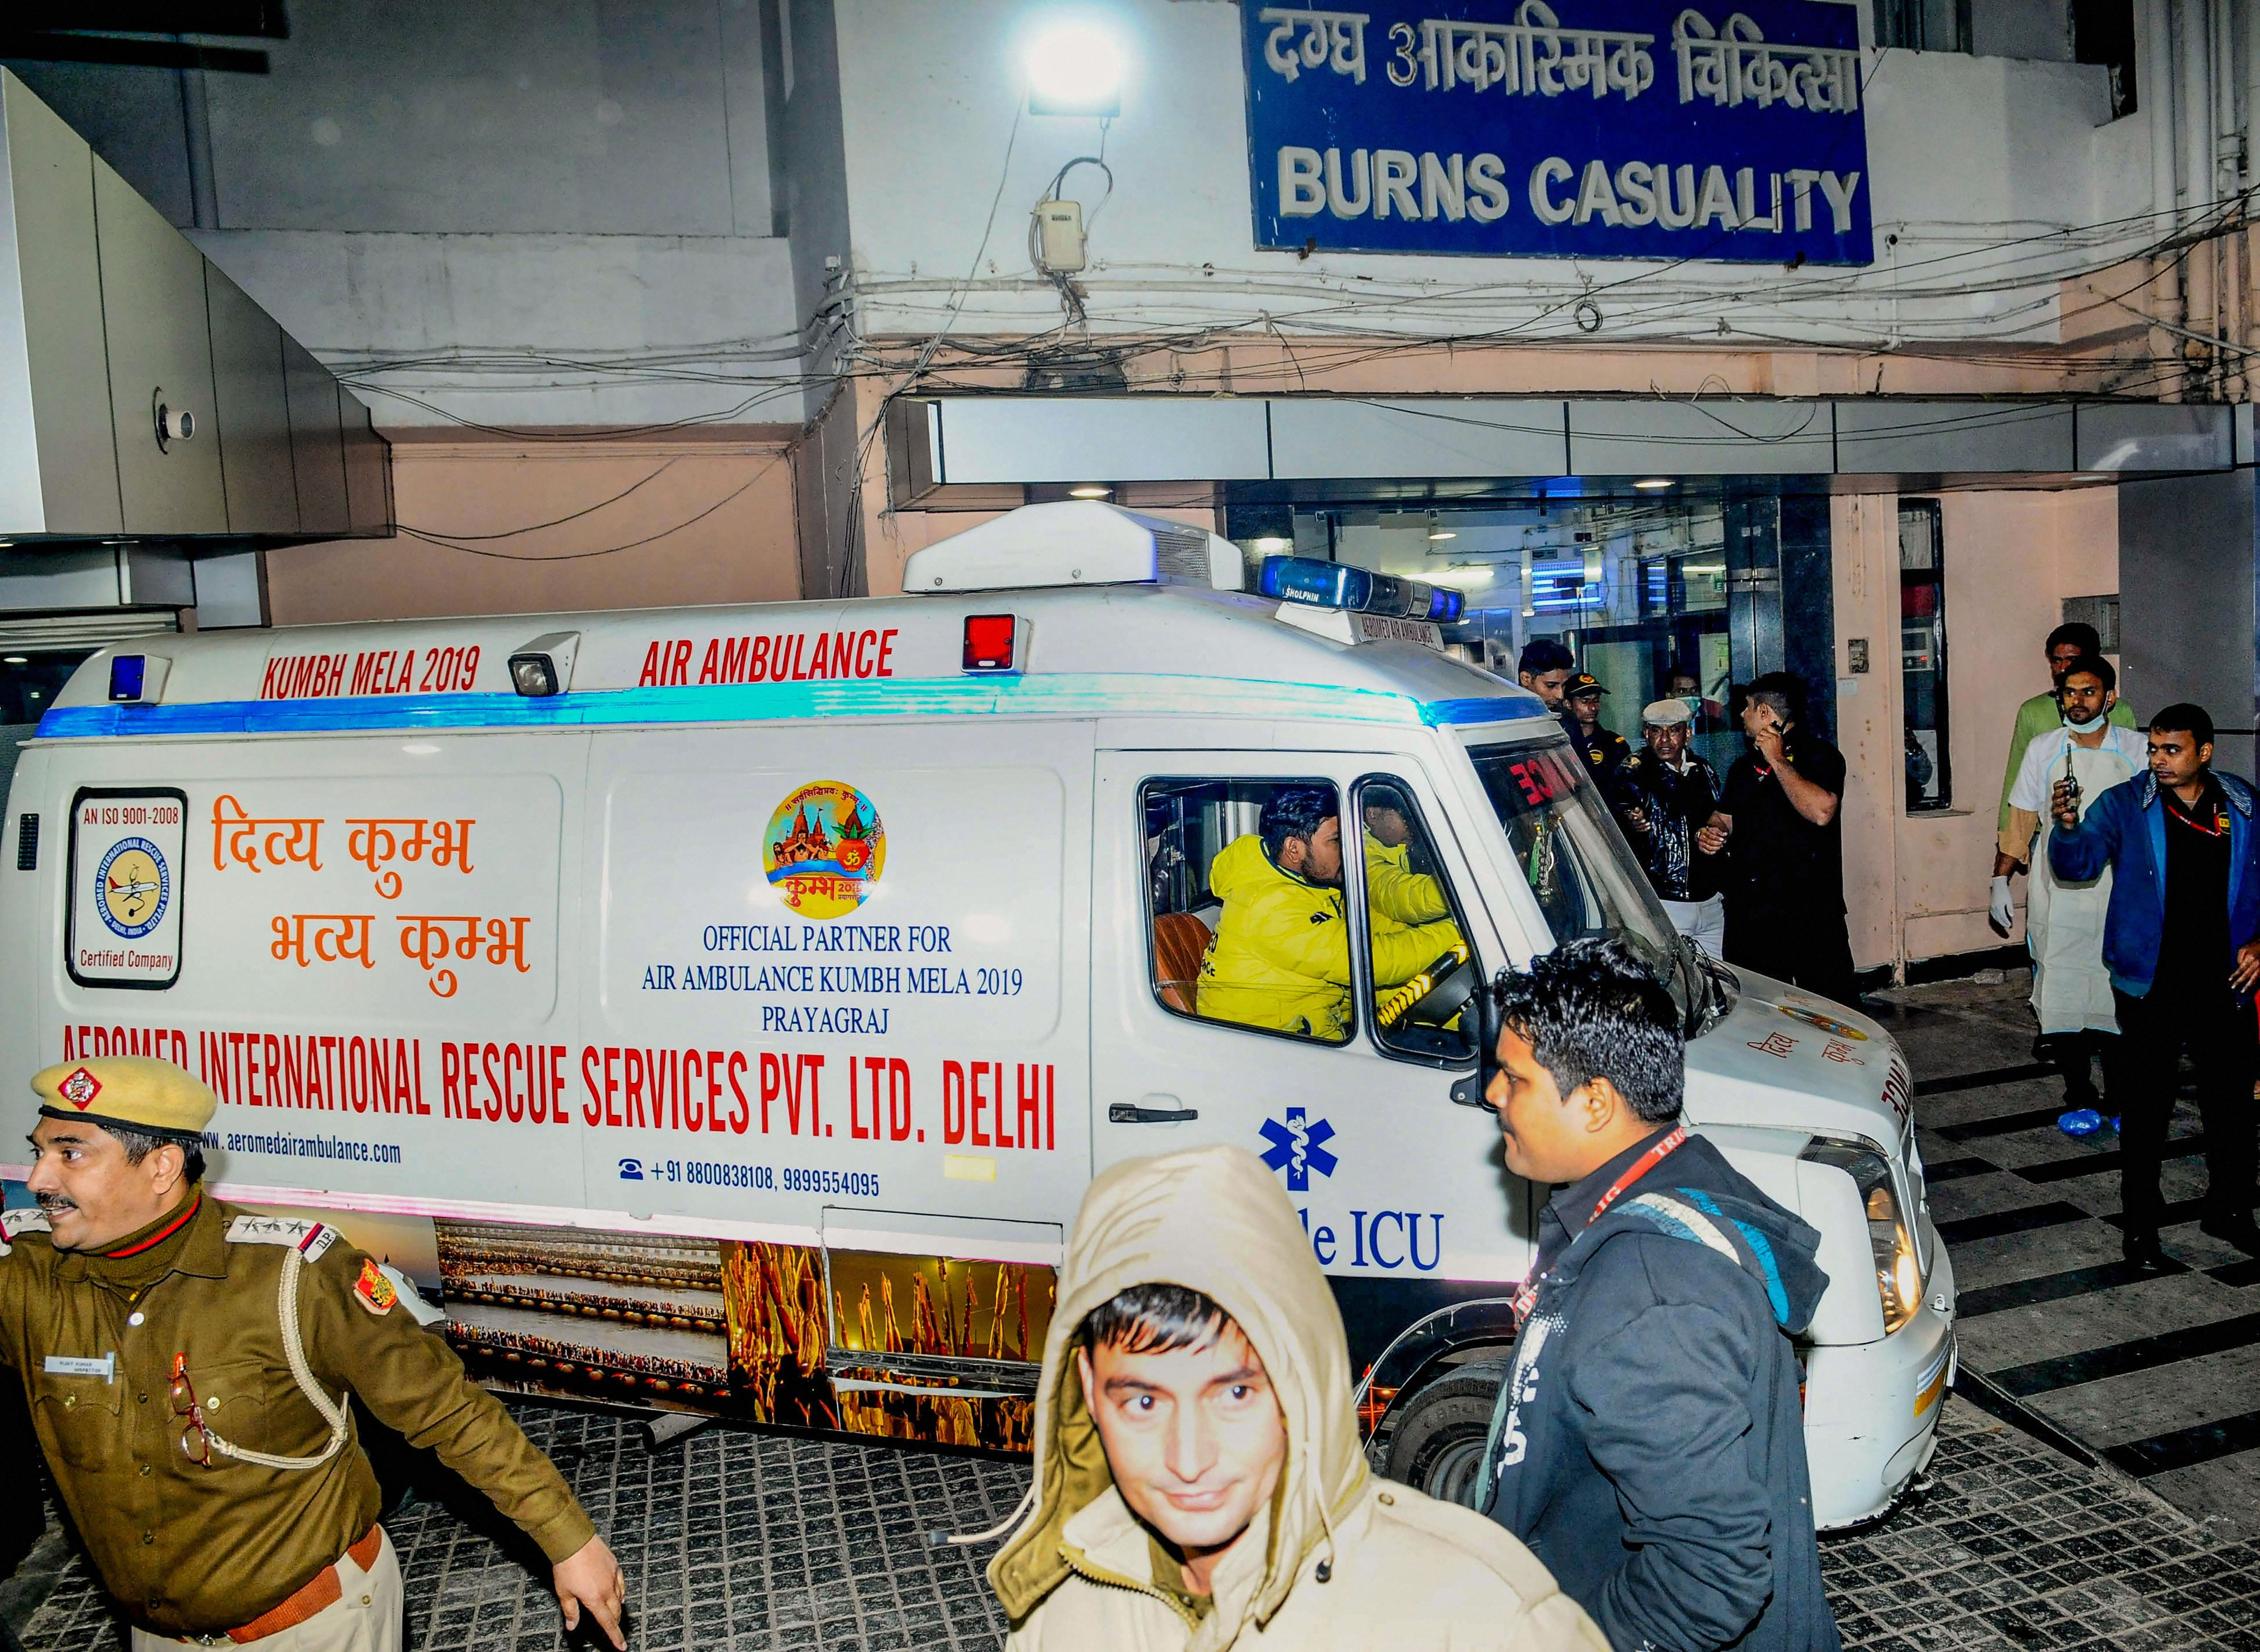 An ambulance carrying the Unnao rape survivor, who was set afire earlier today, arrives at Safdarjung Hospital after the state government arranged for her to be air lifted from Lucknow, in Delhi, Thursday, December 5, 2019.